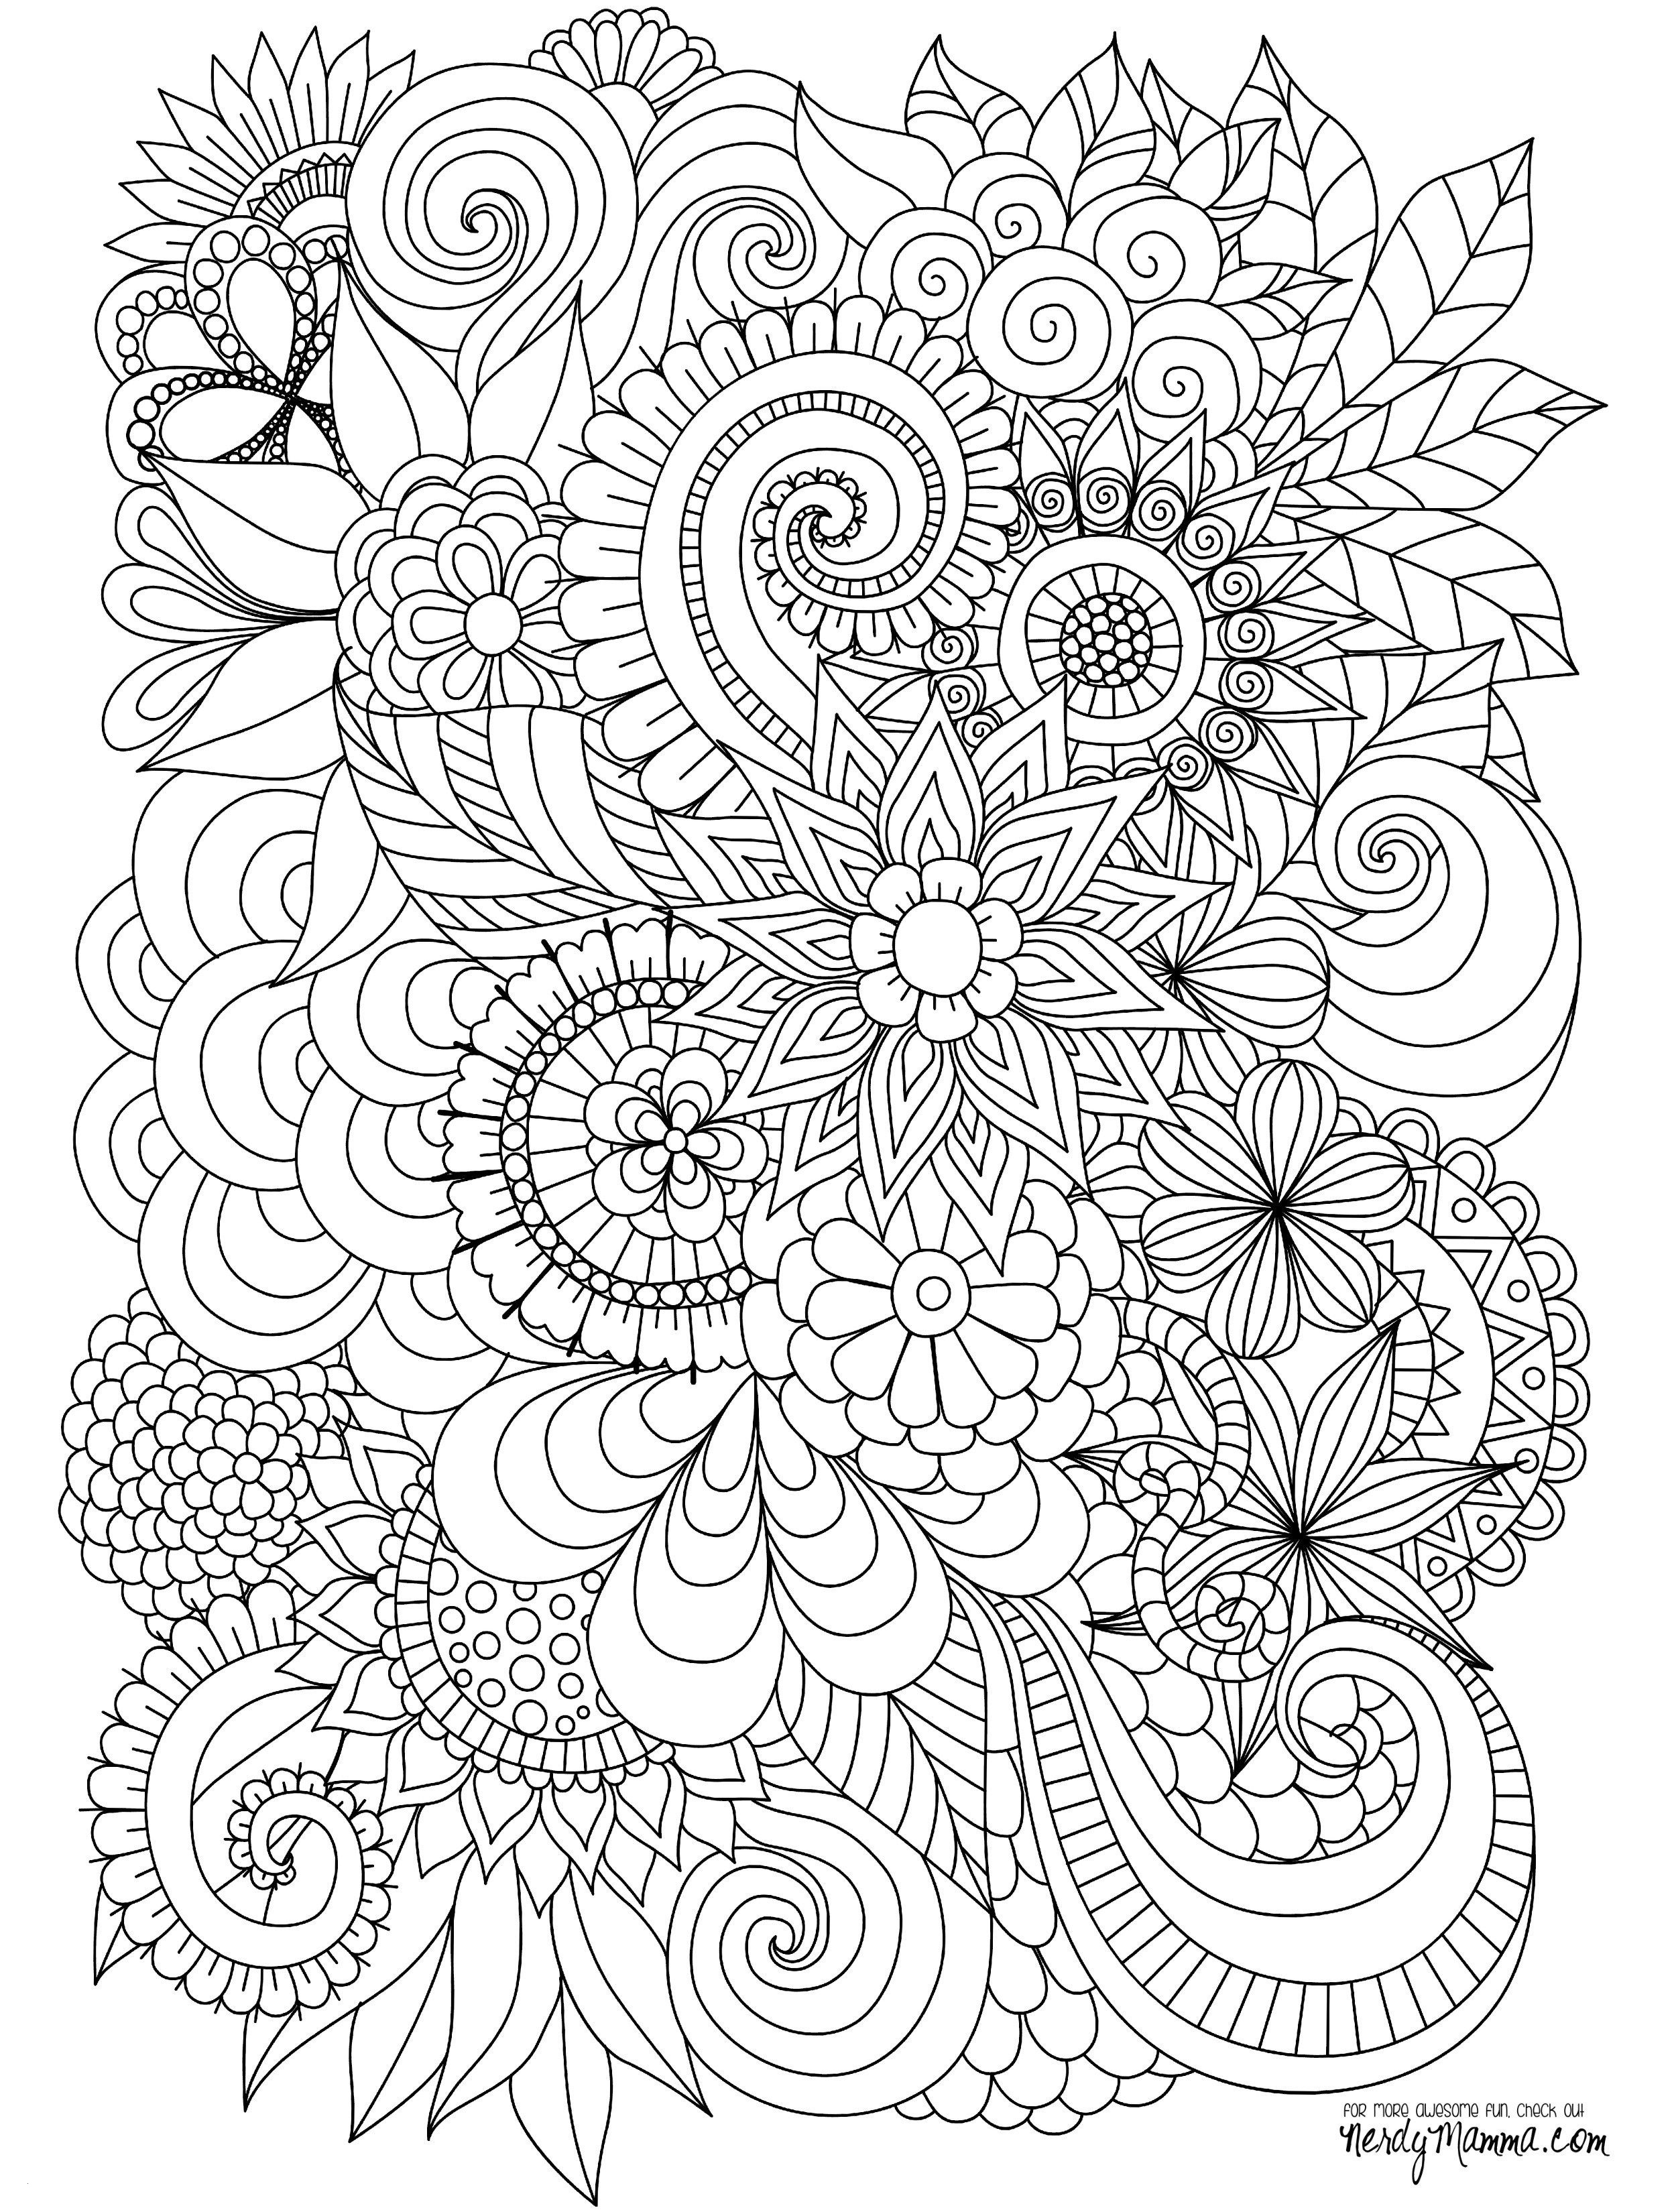 Coloring Pages ~ Mindfulness Coloring Pages Free Printable Zen For - Free Printable Zen Coloring Pages